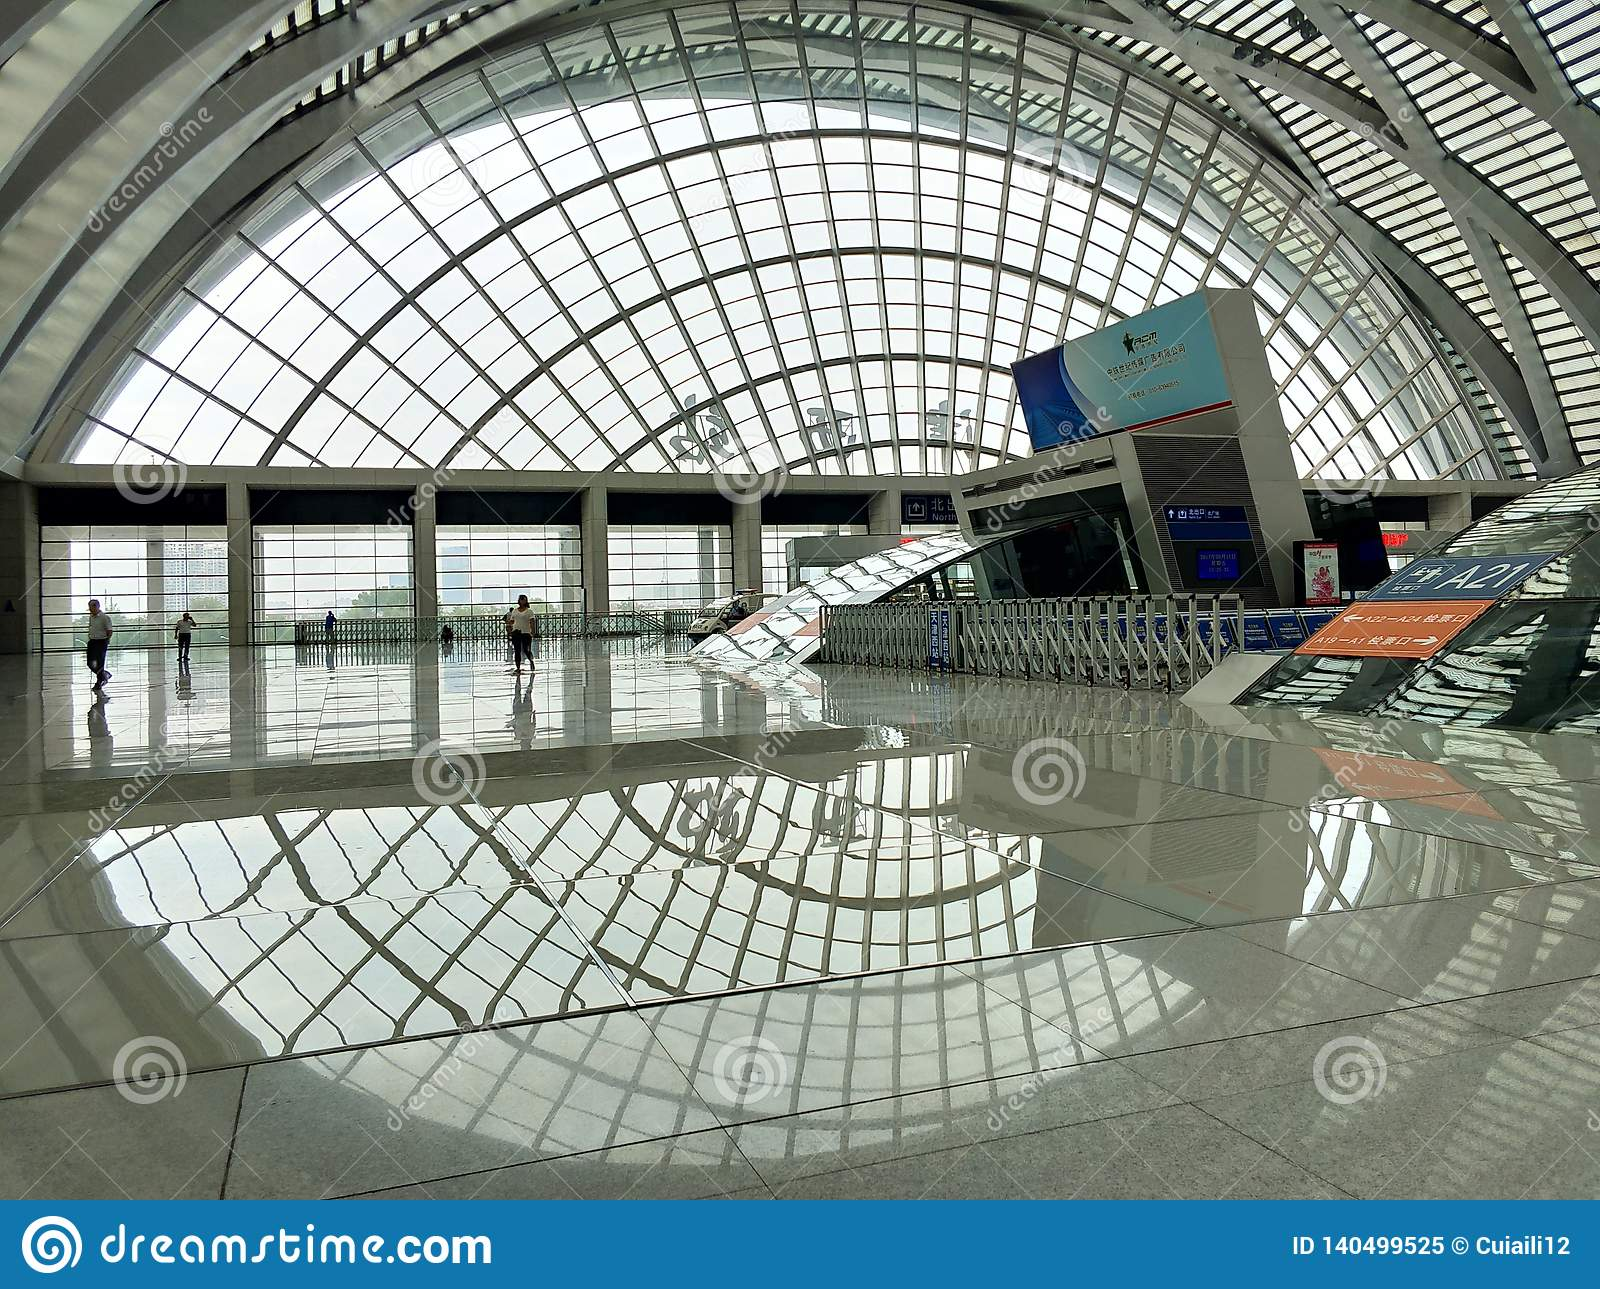 Gare ferroviaire occidentale de Tianjin, Chine